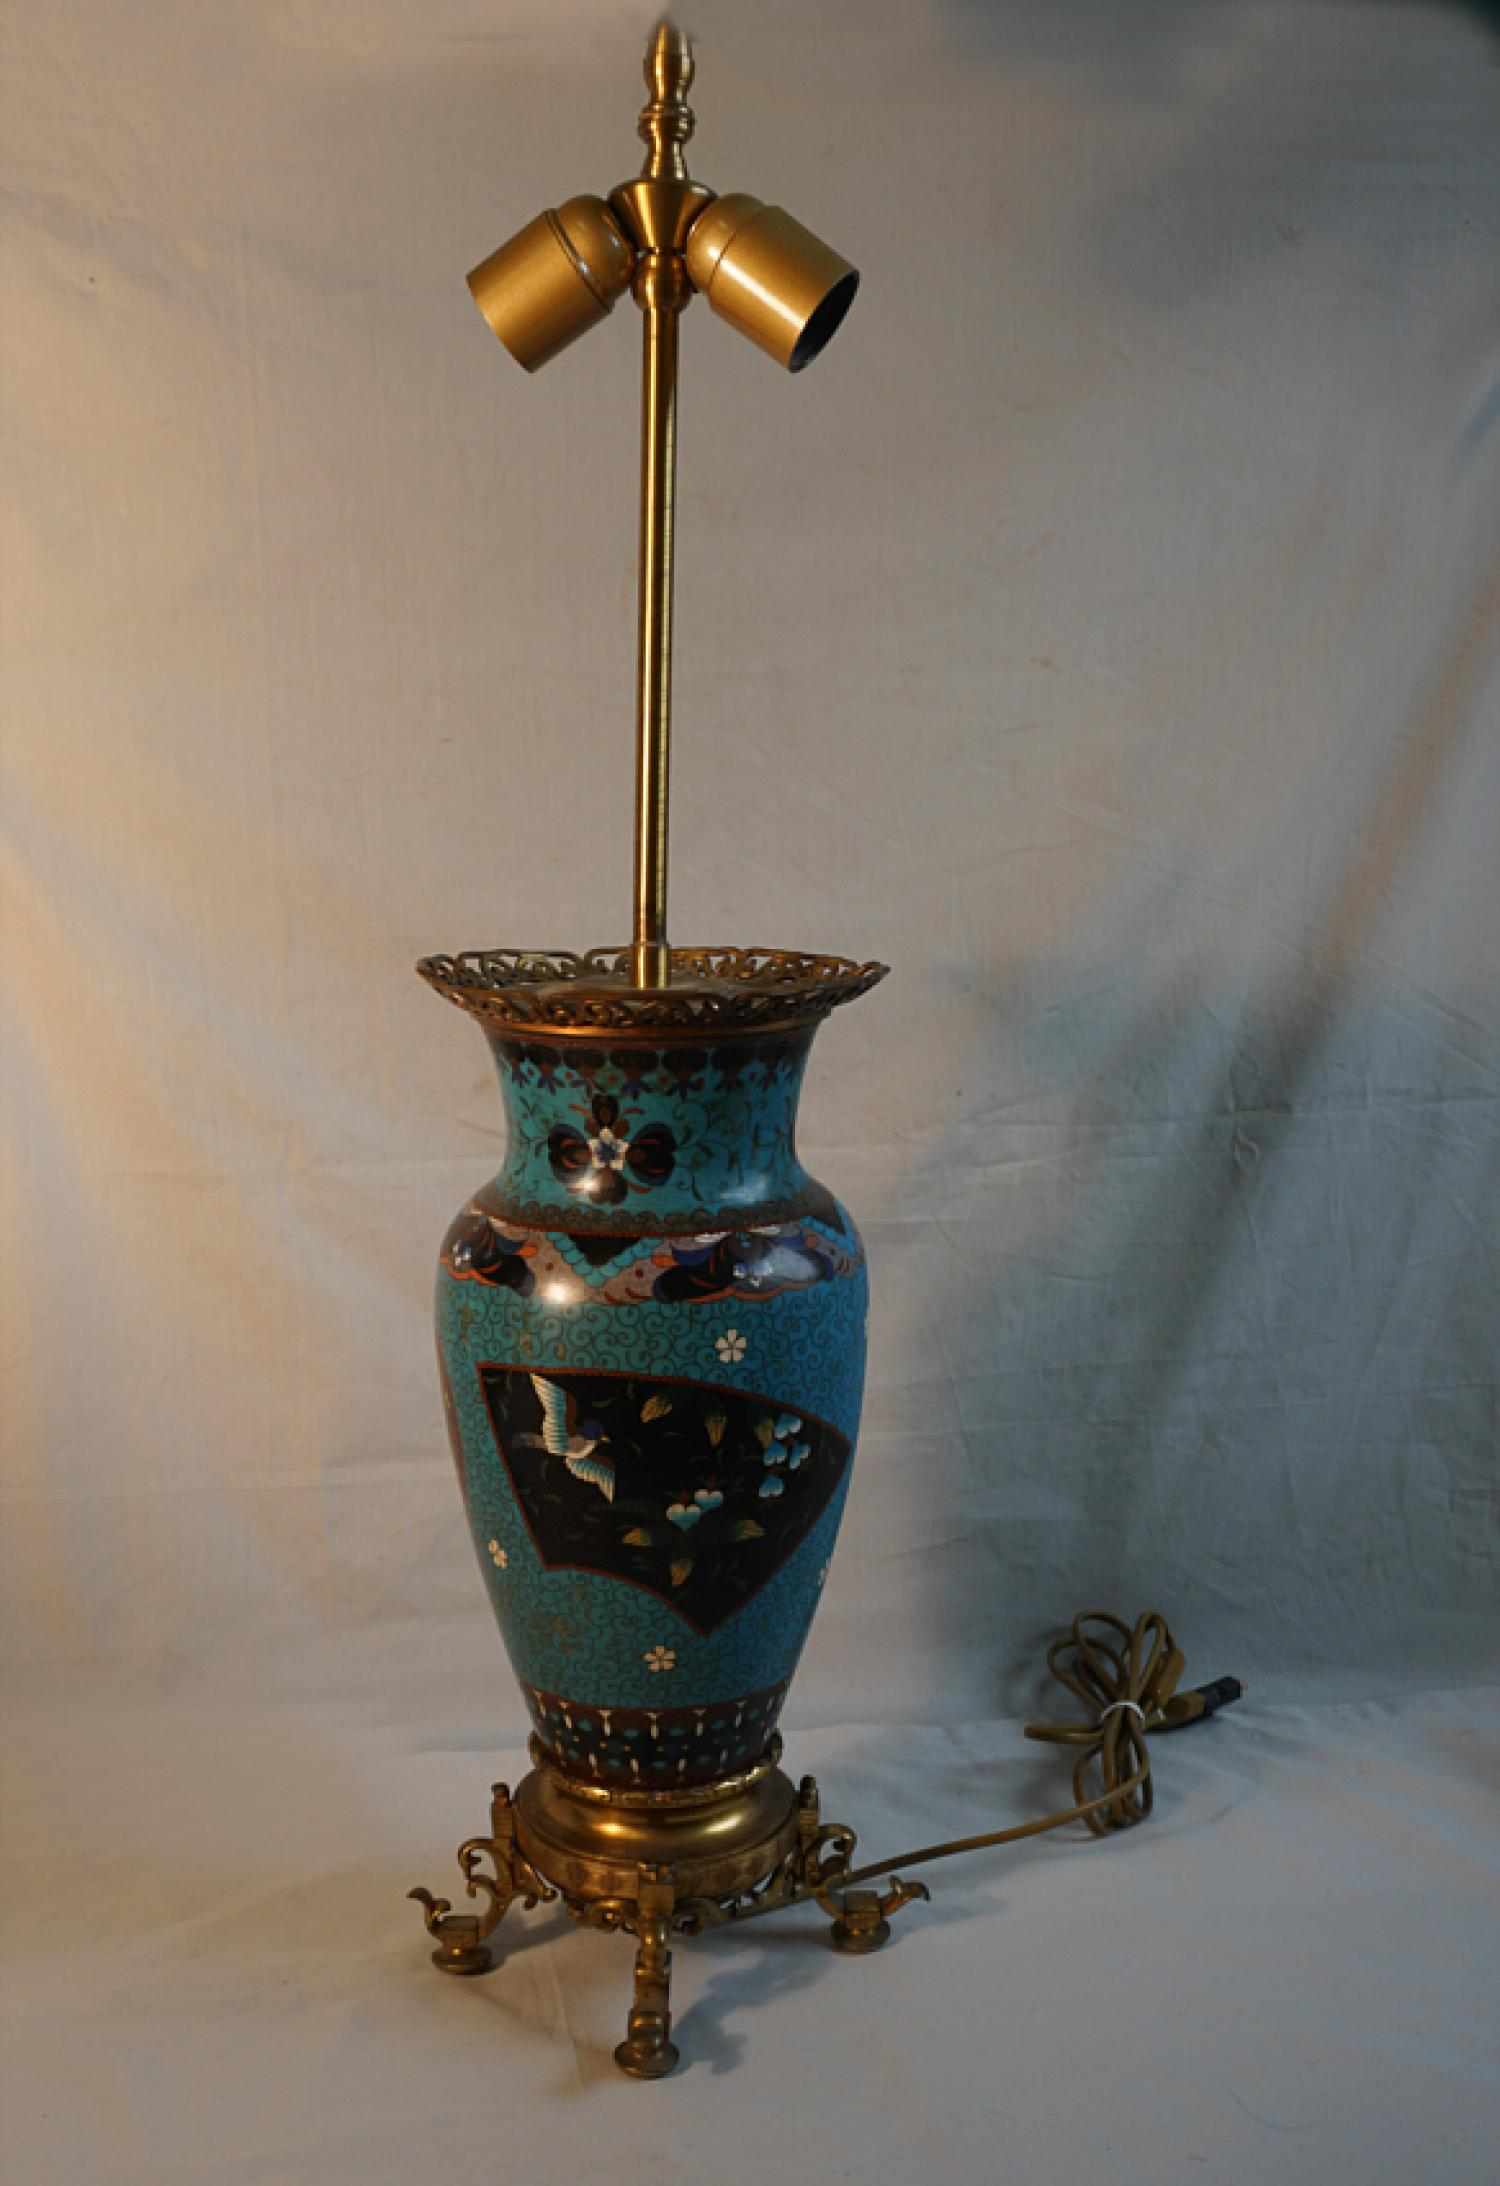 Antique Japanese cloisonne lamp with bronze mounted base c1870